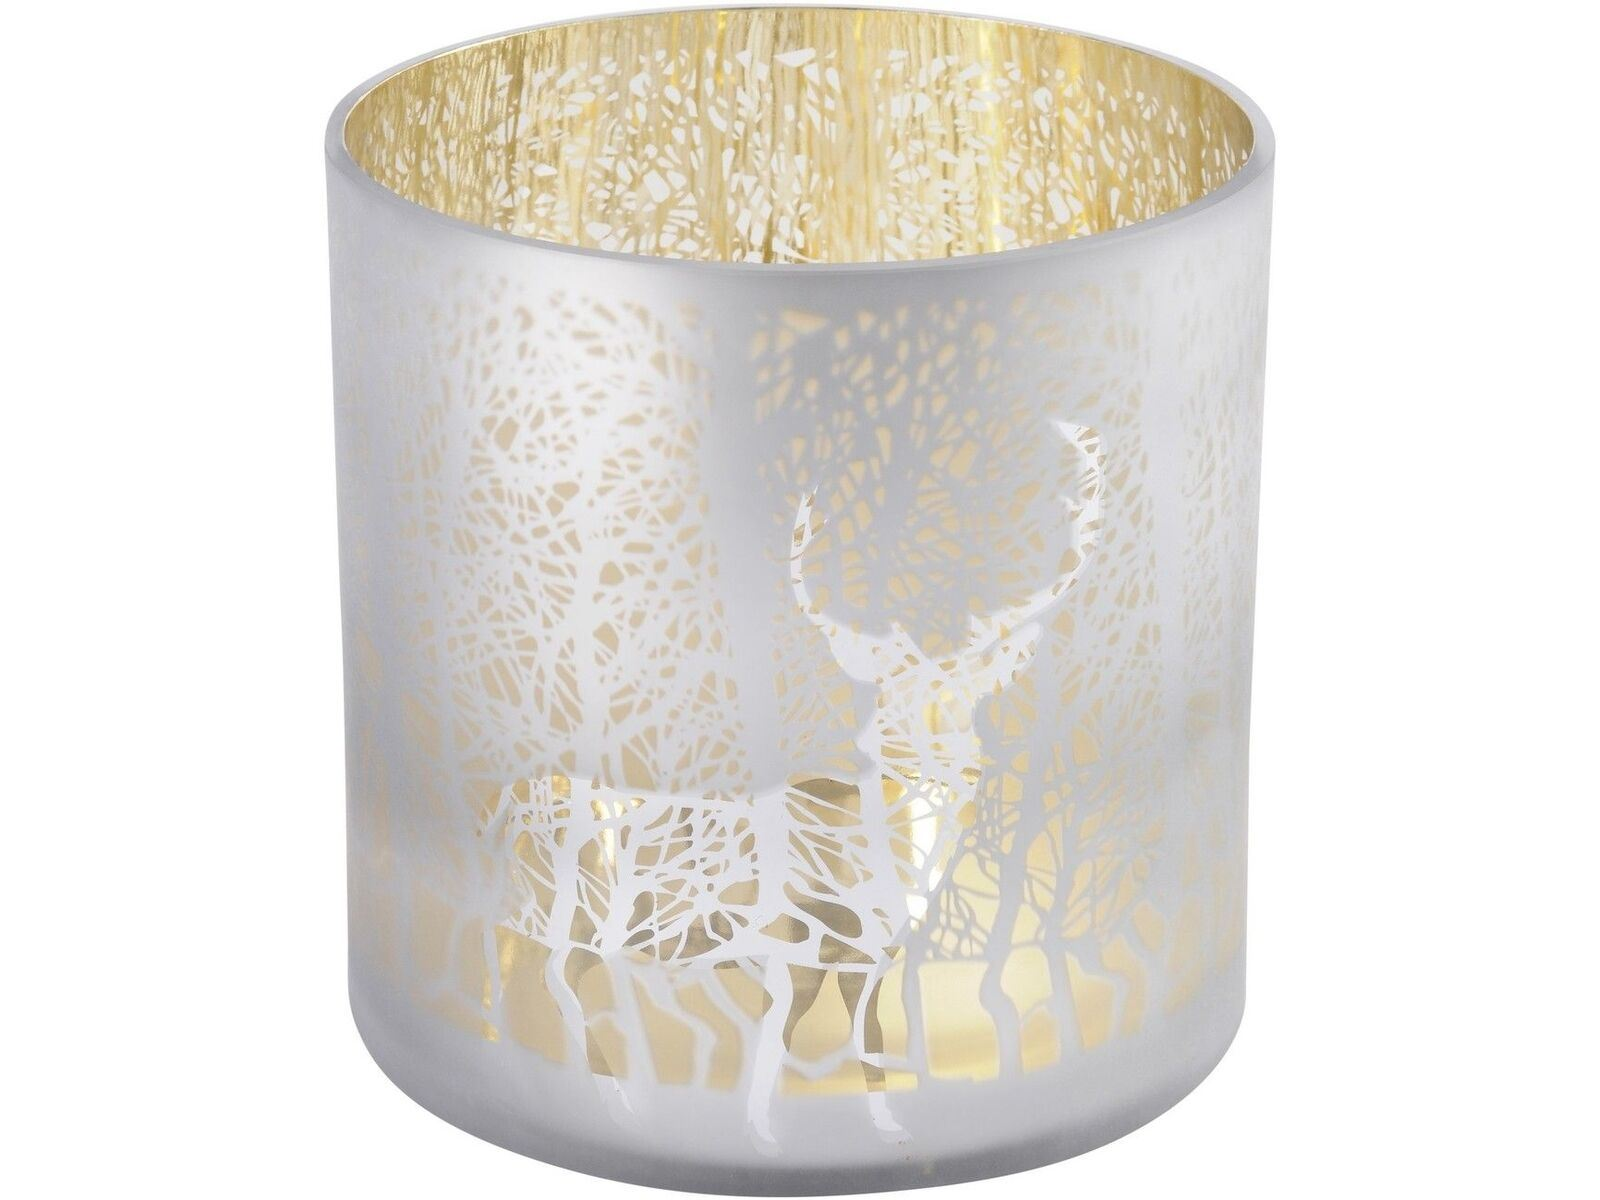 Libra Reindeer And Tree Frosted Gold Hurricane Candle Holder Christmas Deer 5013622189904 Ebay